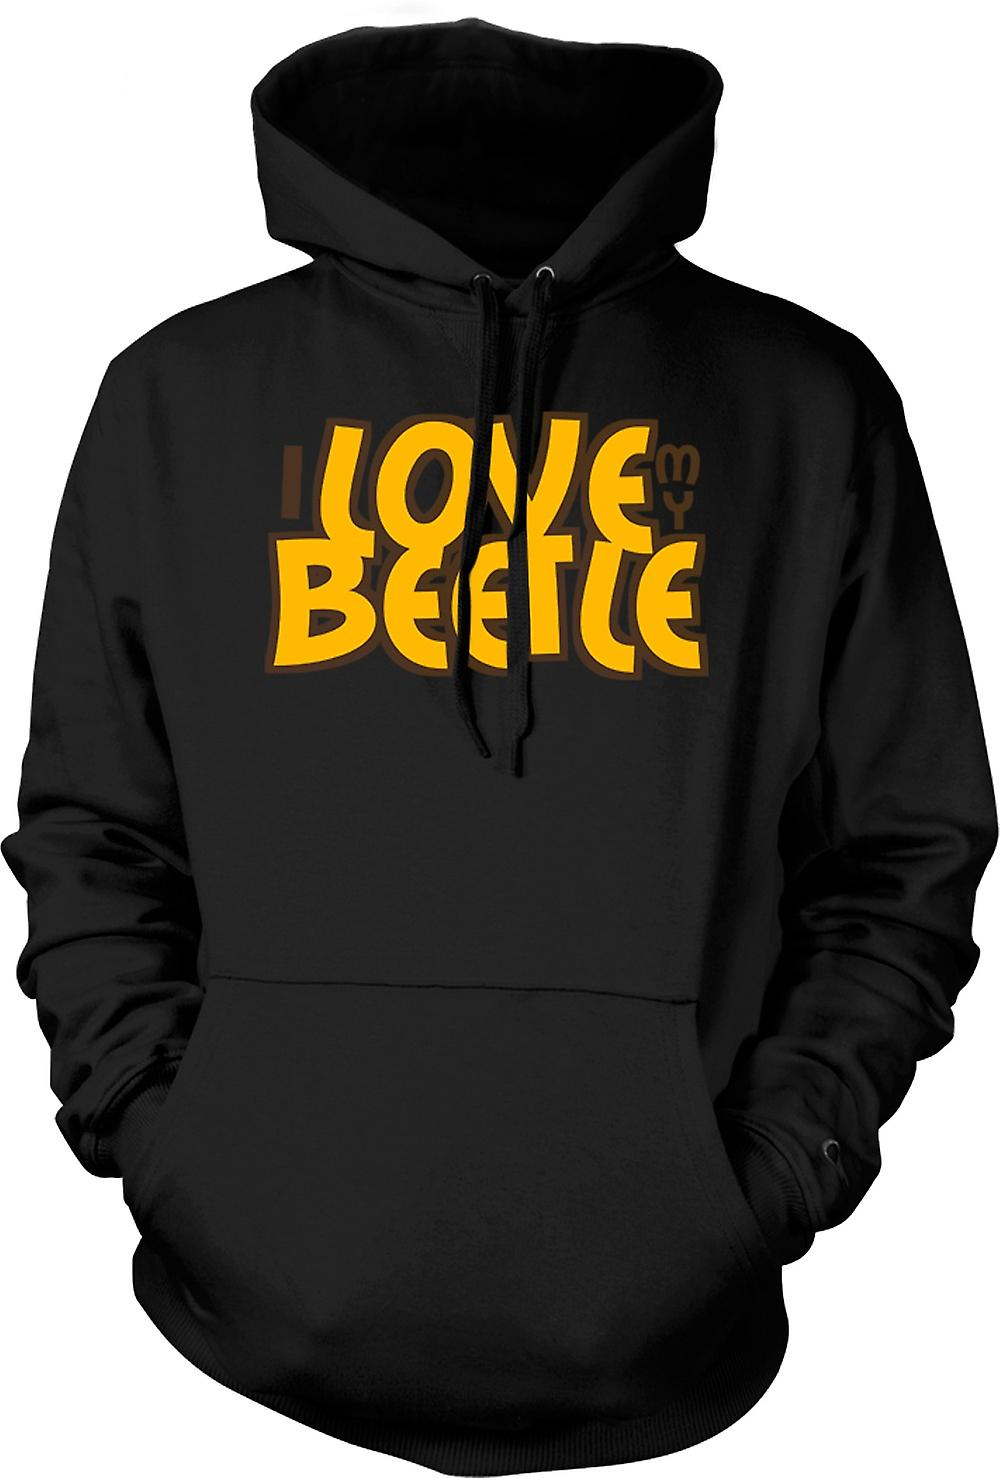 Kids Hoodie - I Love My Beetle - Car Enthusiast